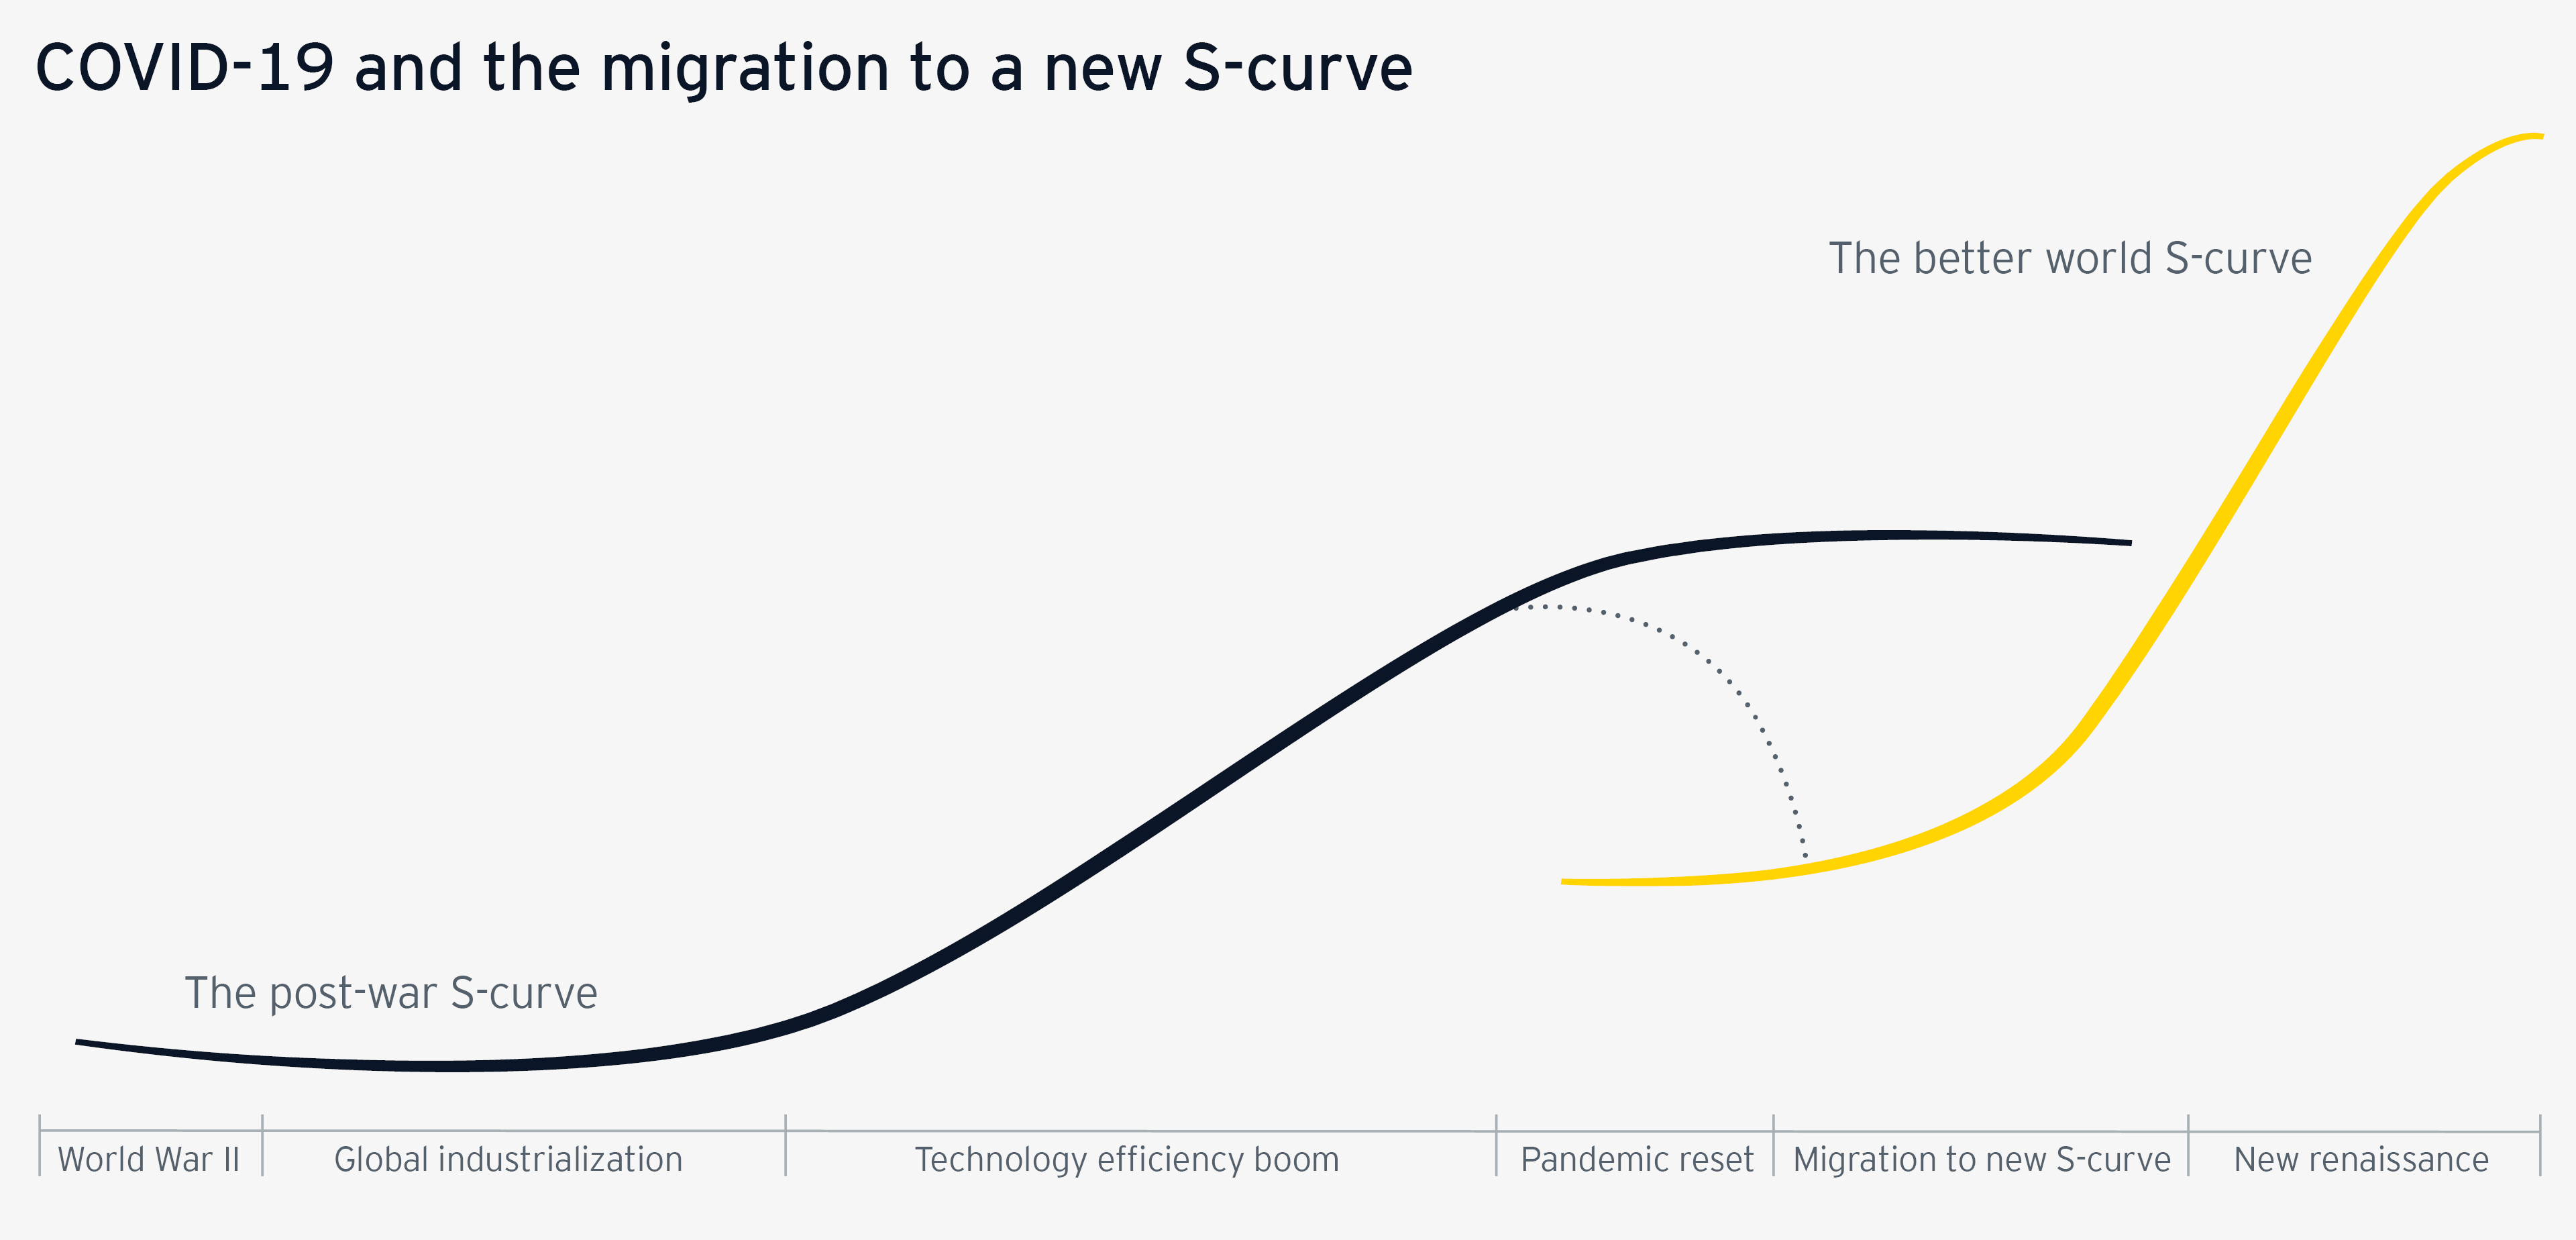 Covid-19 and the migration to a new s-curve